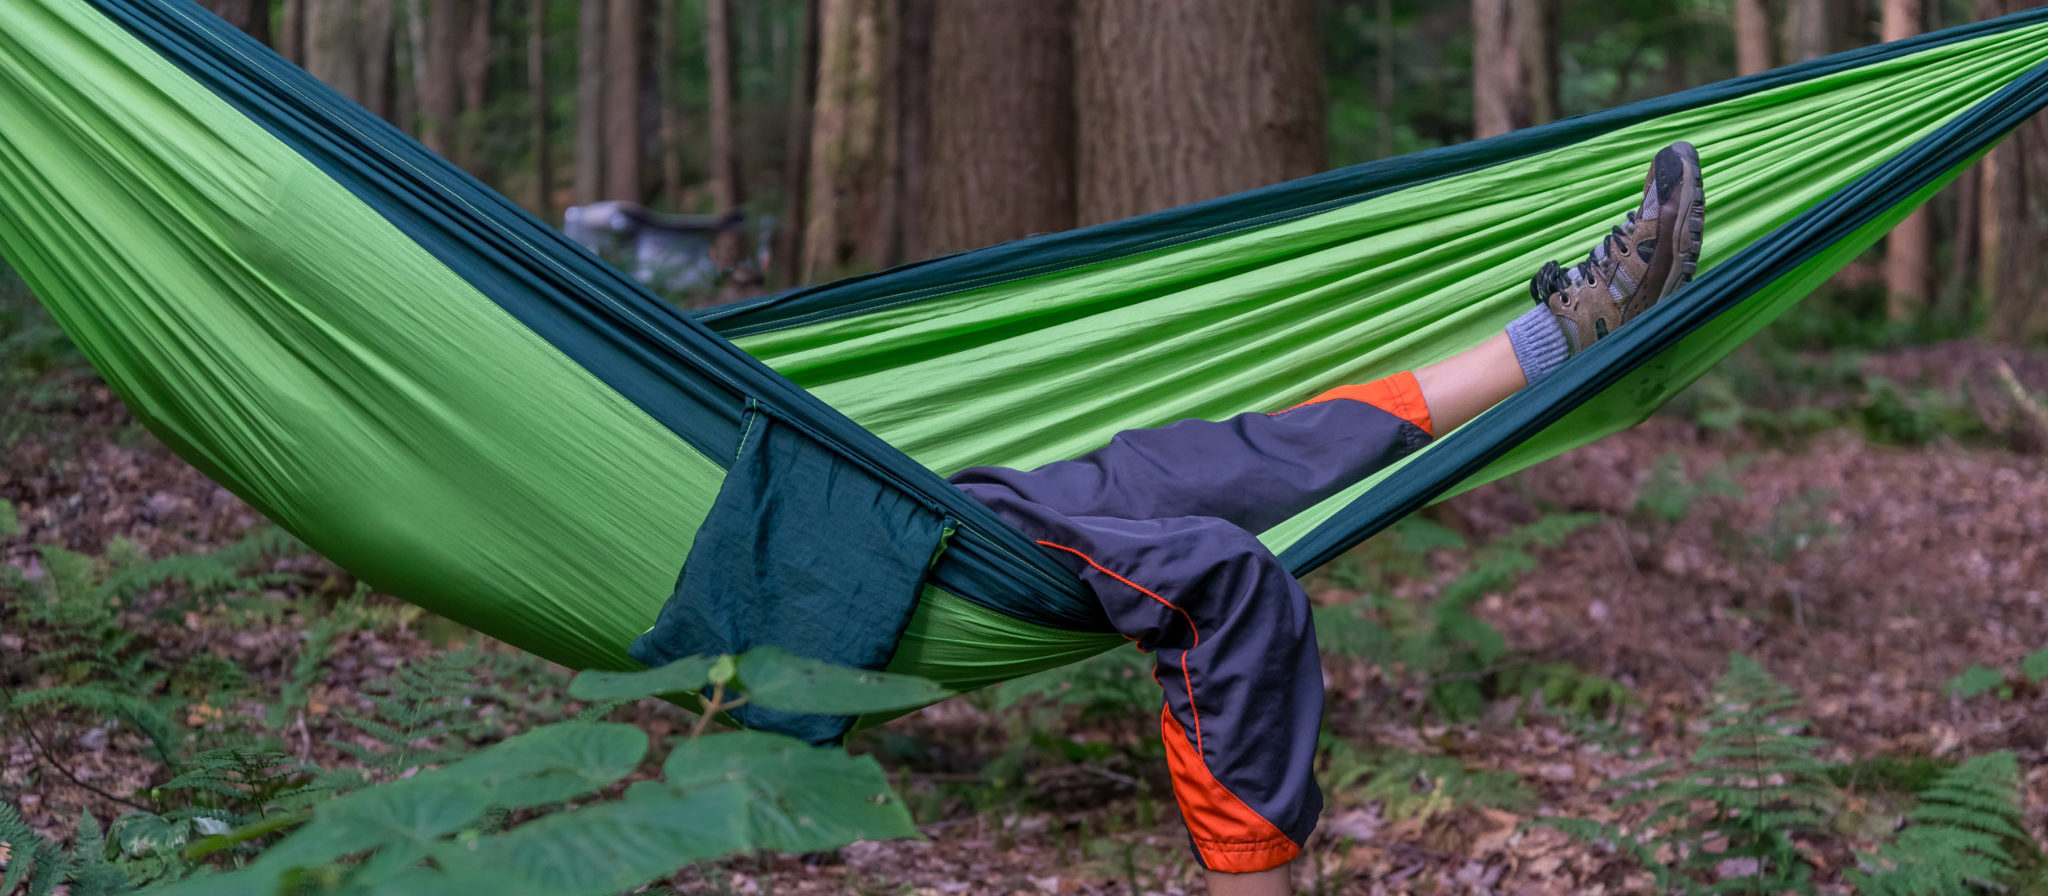 Can you think of any better way to relax and experience the joy and calmness of being outdoors?